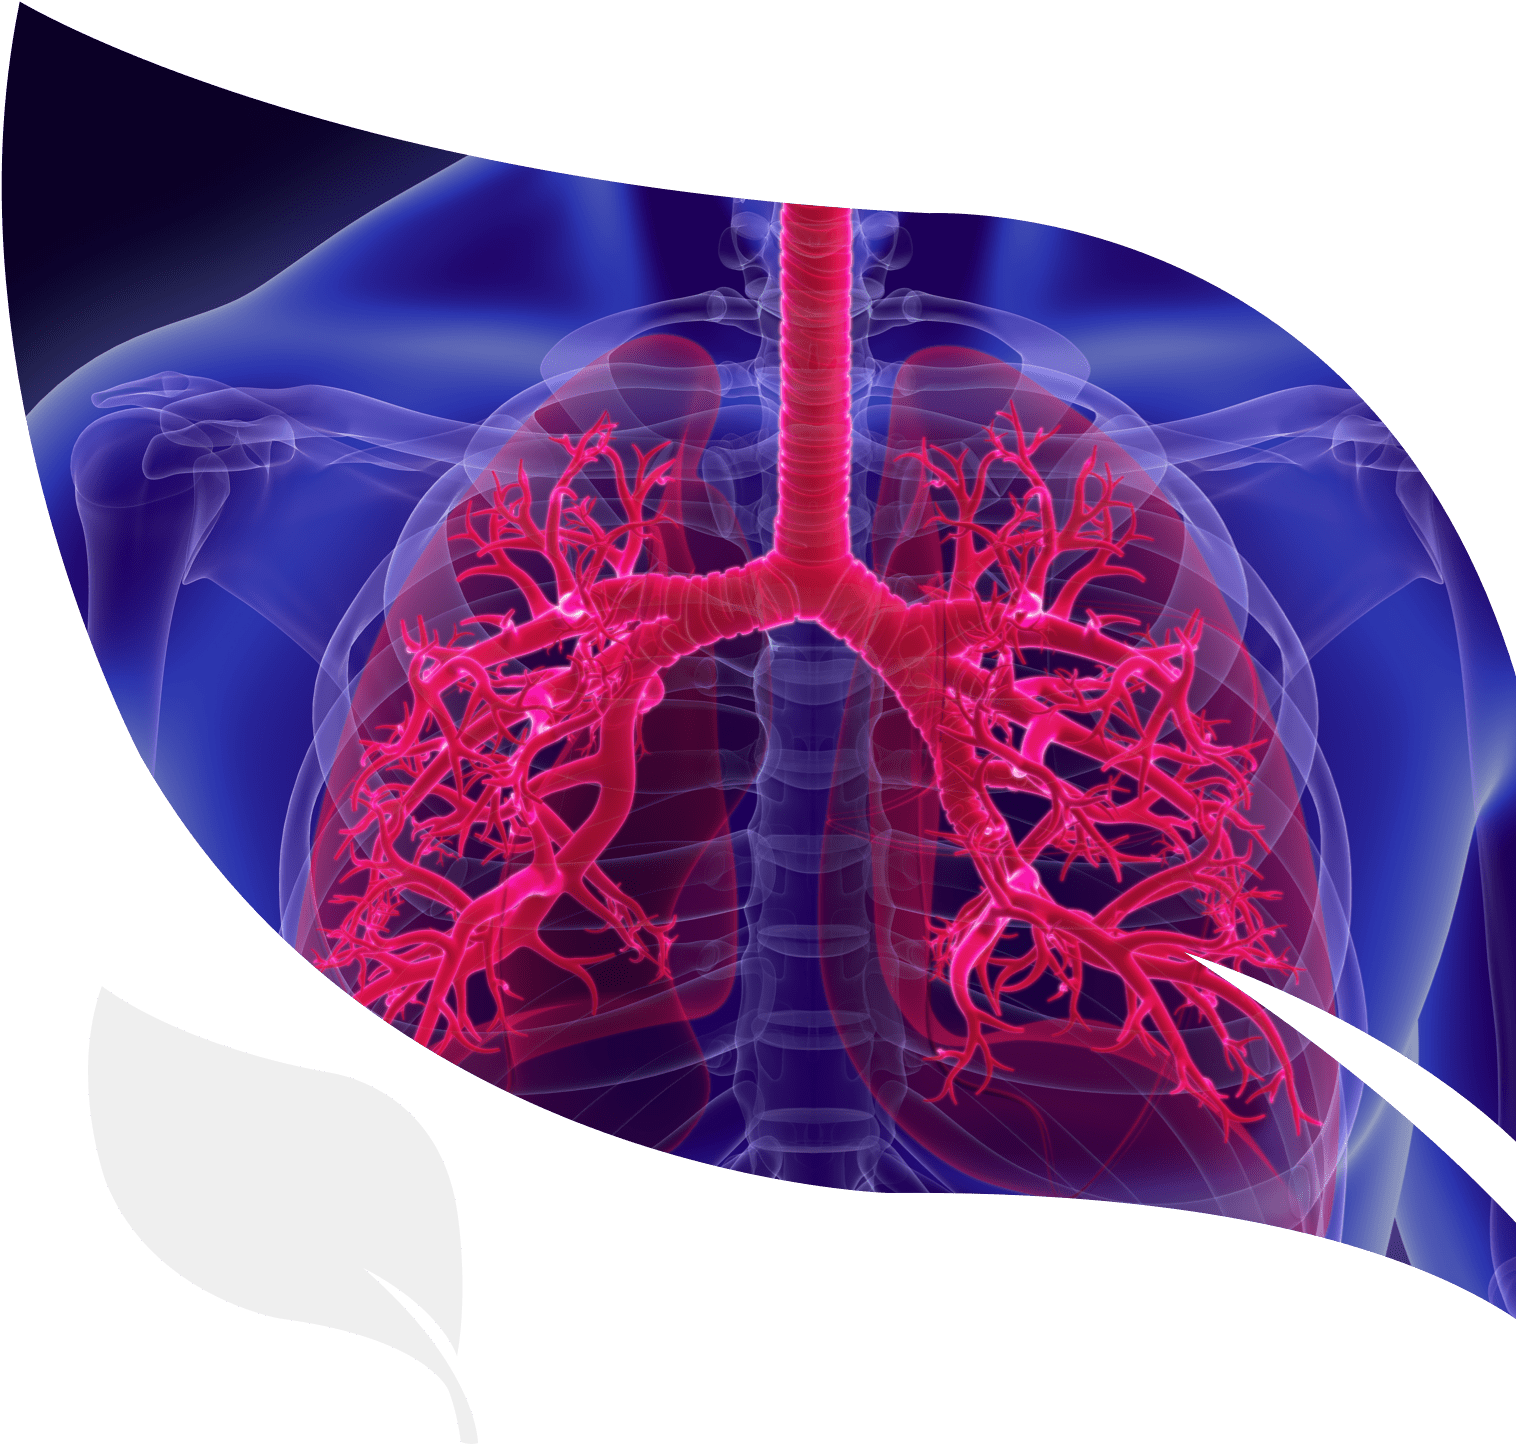 human lungs, relevant to idiopathic pulmonary fibrosis (IPF), for which IBIO-100 candidates are in development for therapeutic applications